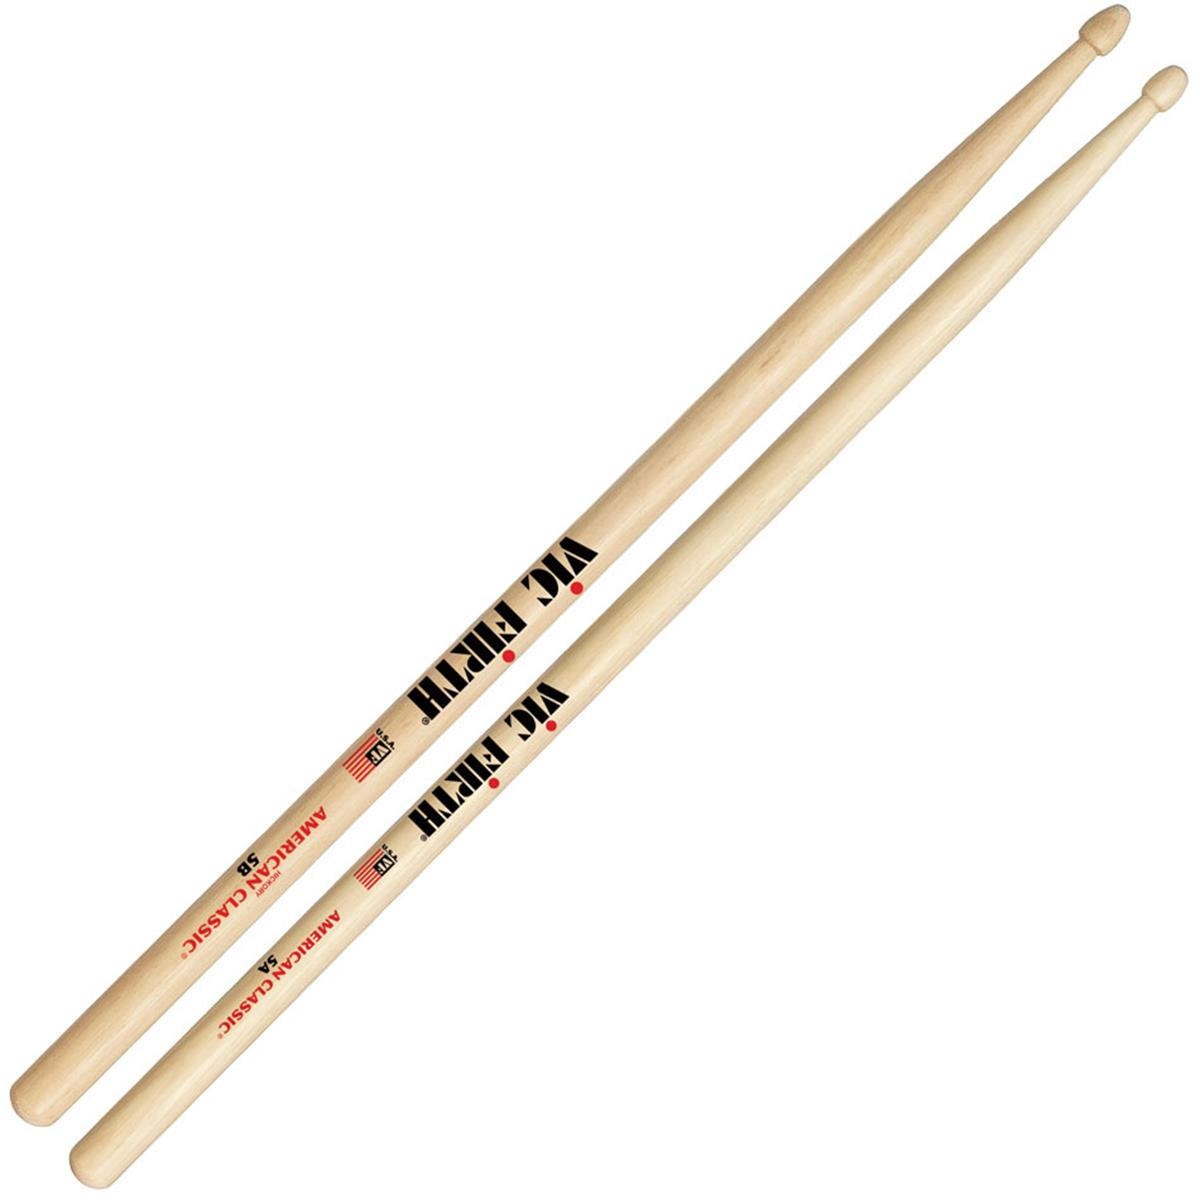 VIC FIRTH 5A PAIO